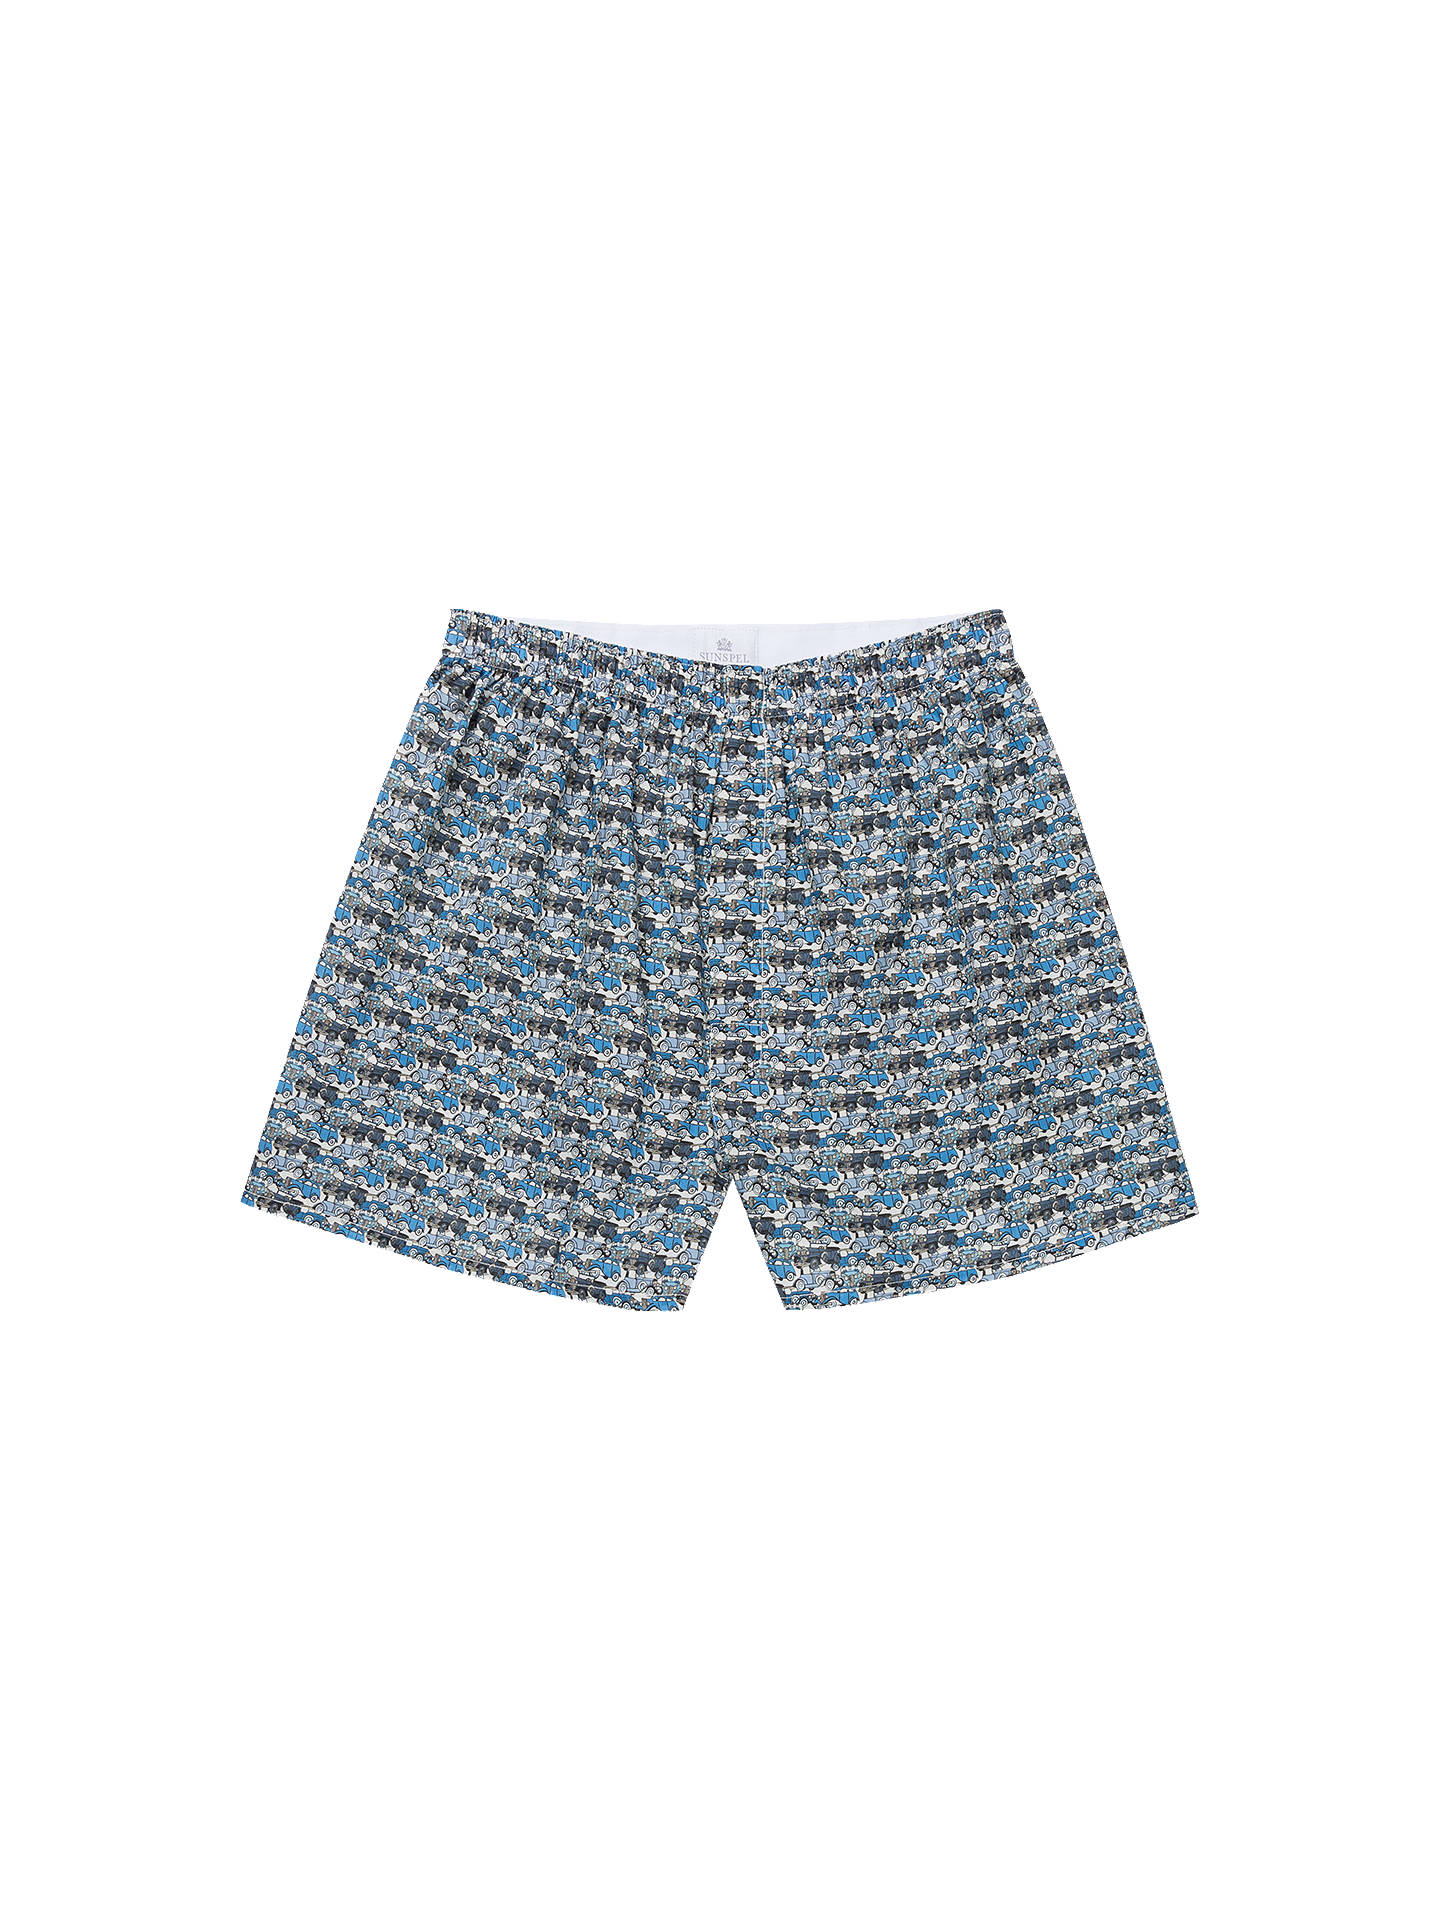 BuySunspel Roaring Wheels Woven Cotton Boxers, Blue, XL Online at johnlewis.com